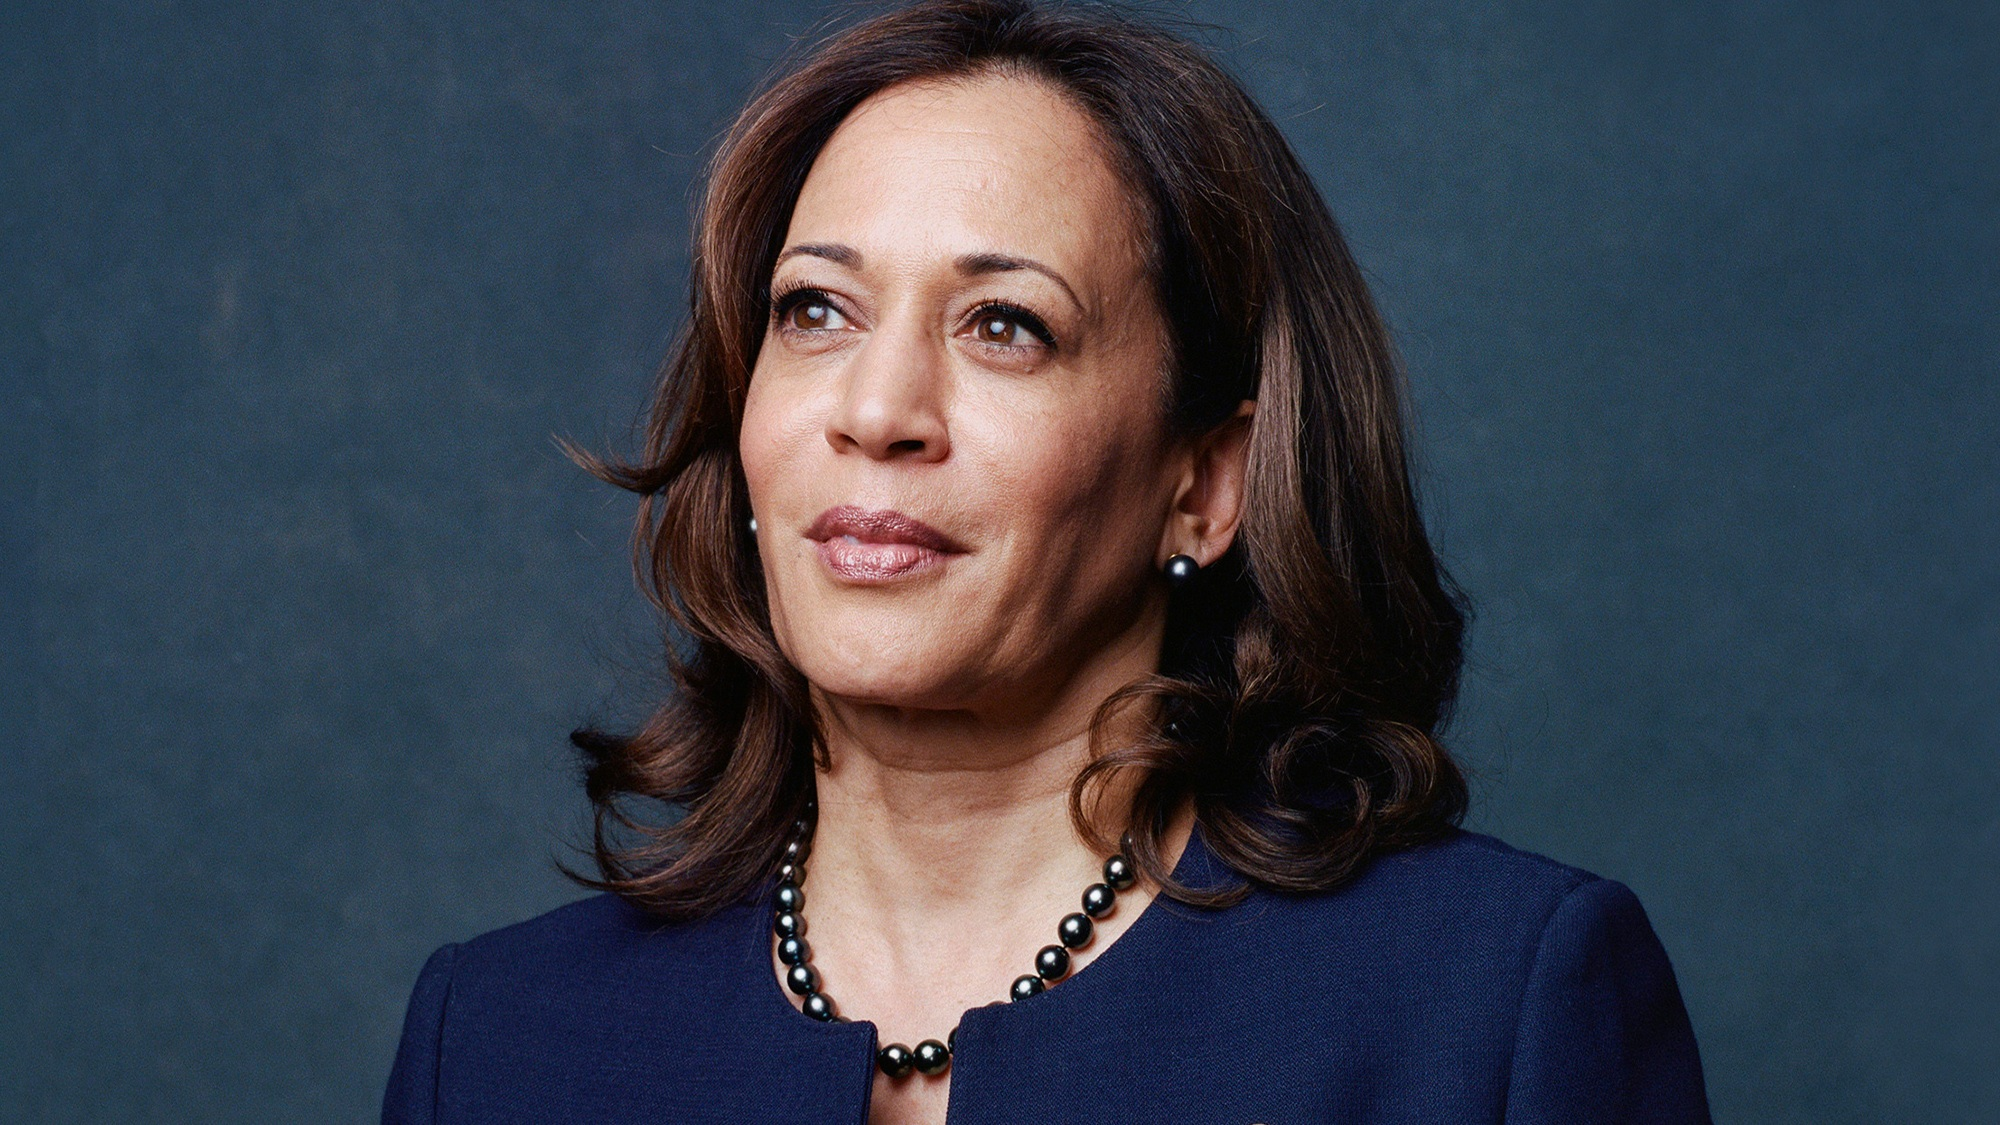 Kamala Harris (D) - Kamala Harris served as the Attorney General of California from 2011 to 2017. She has served as a United States Senator since 2017.